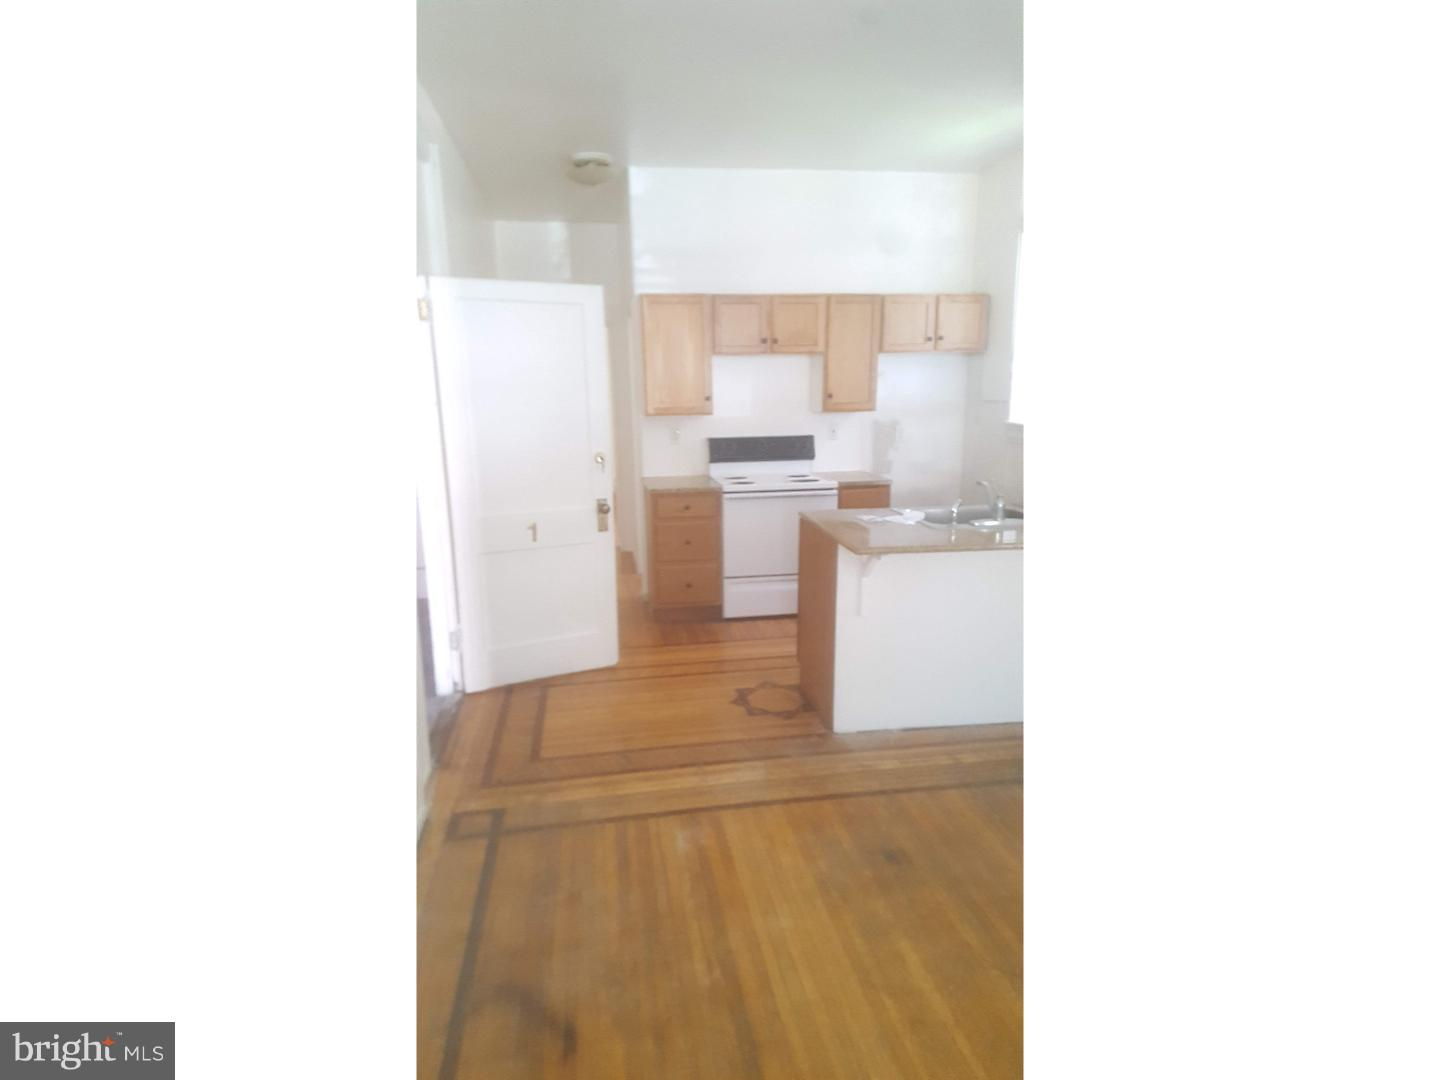 Property for Rent at 910 W MARSHALL Street Norristown, Pennsylvania 19401 United States